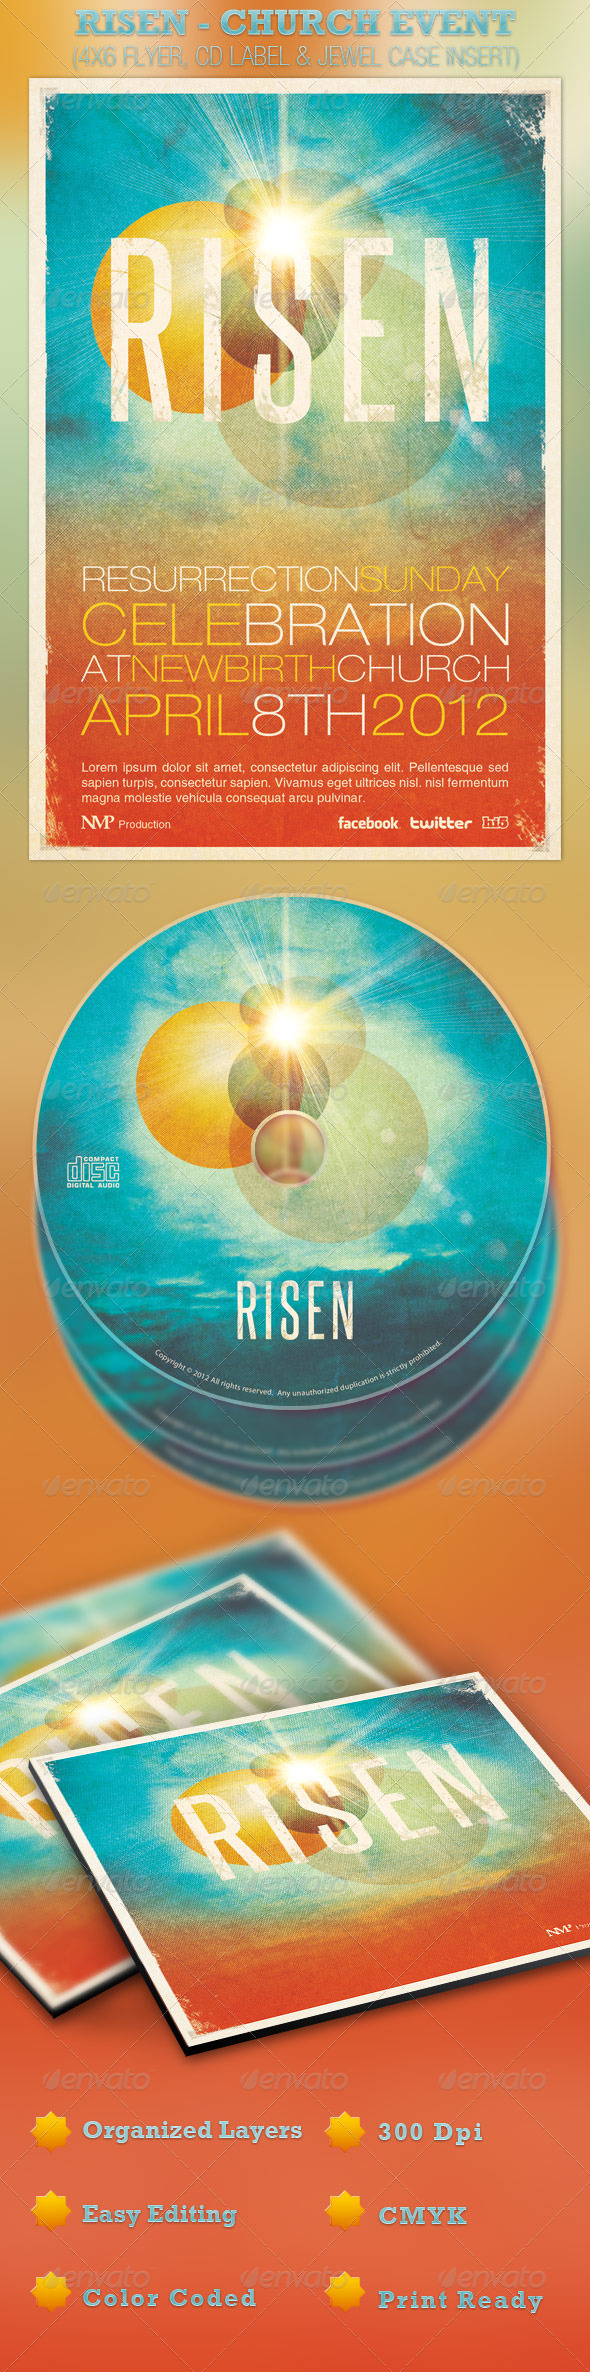 GraphicRiver Risen Church Event Flyer and CD Template 1865100